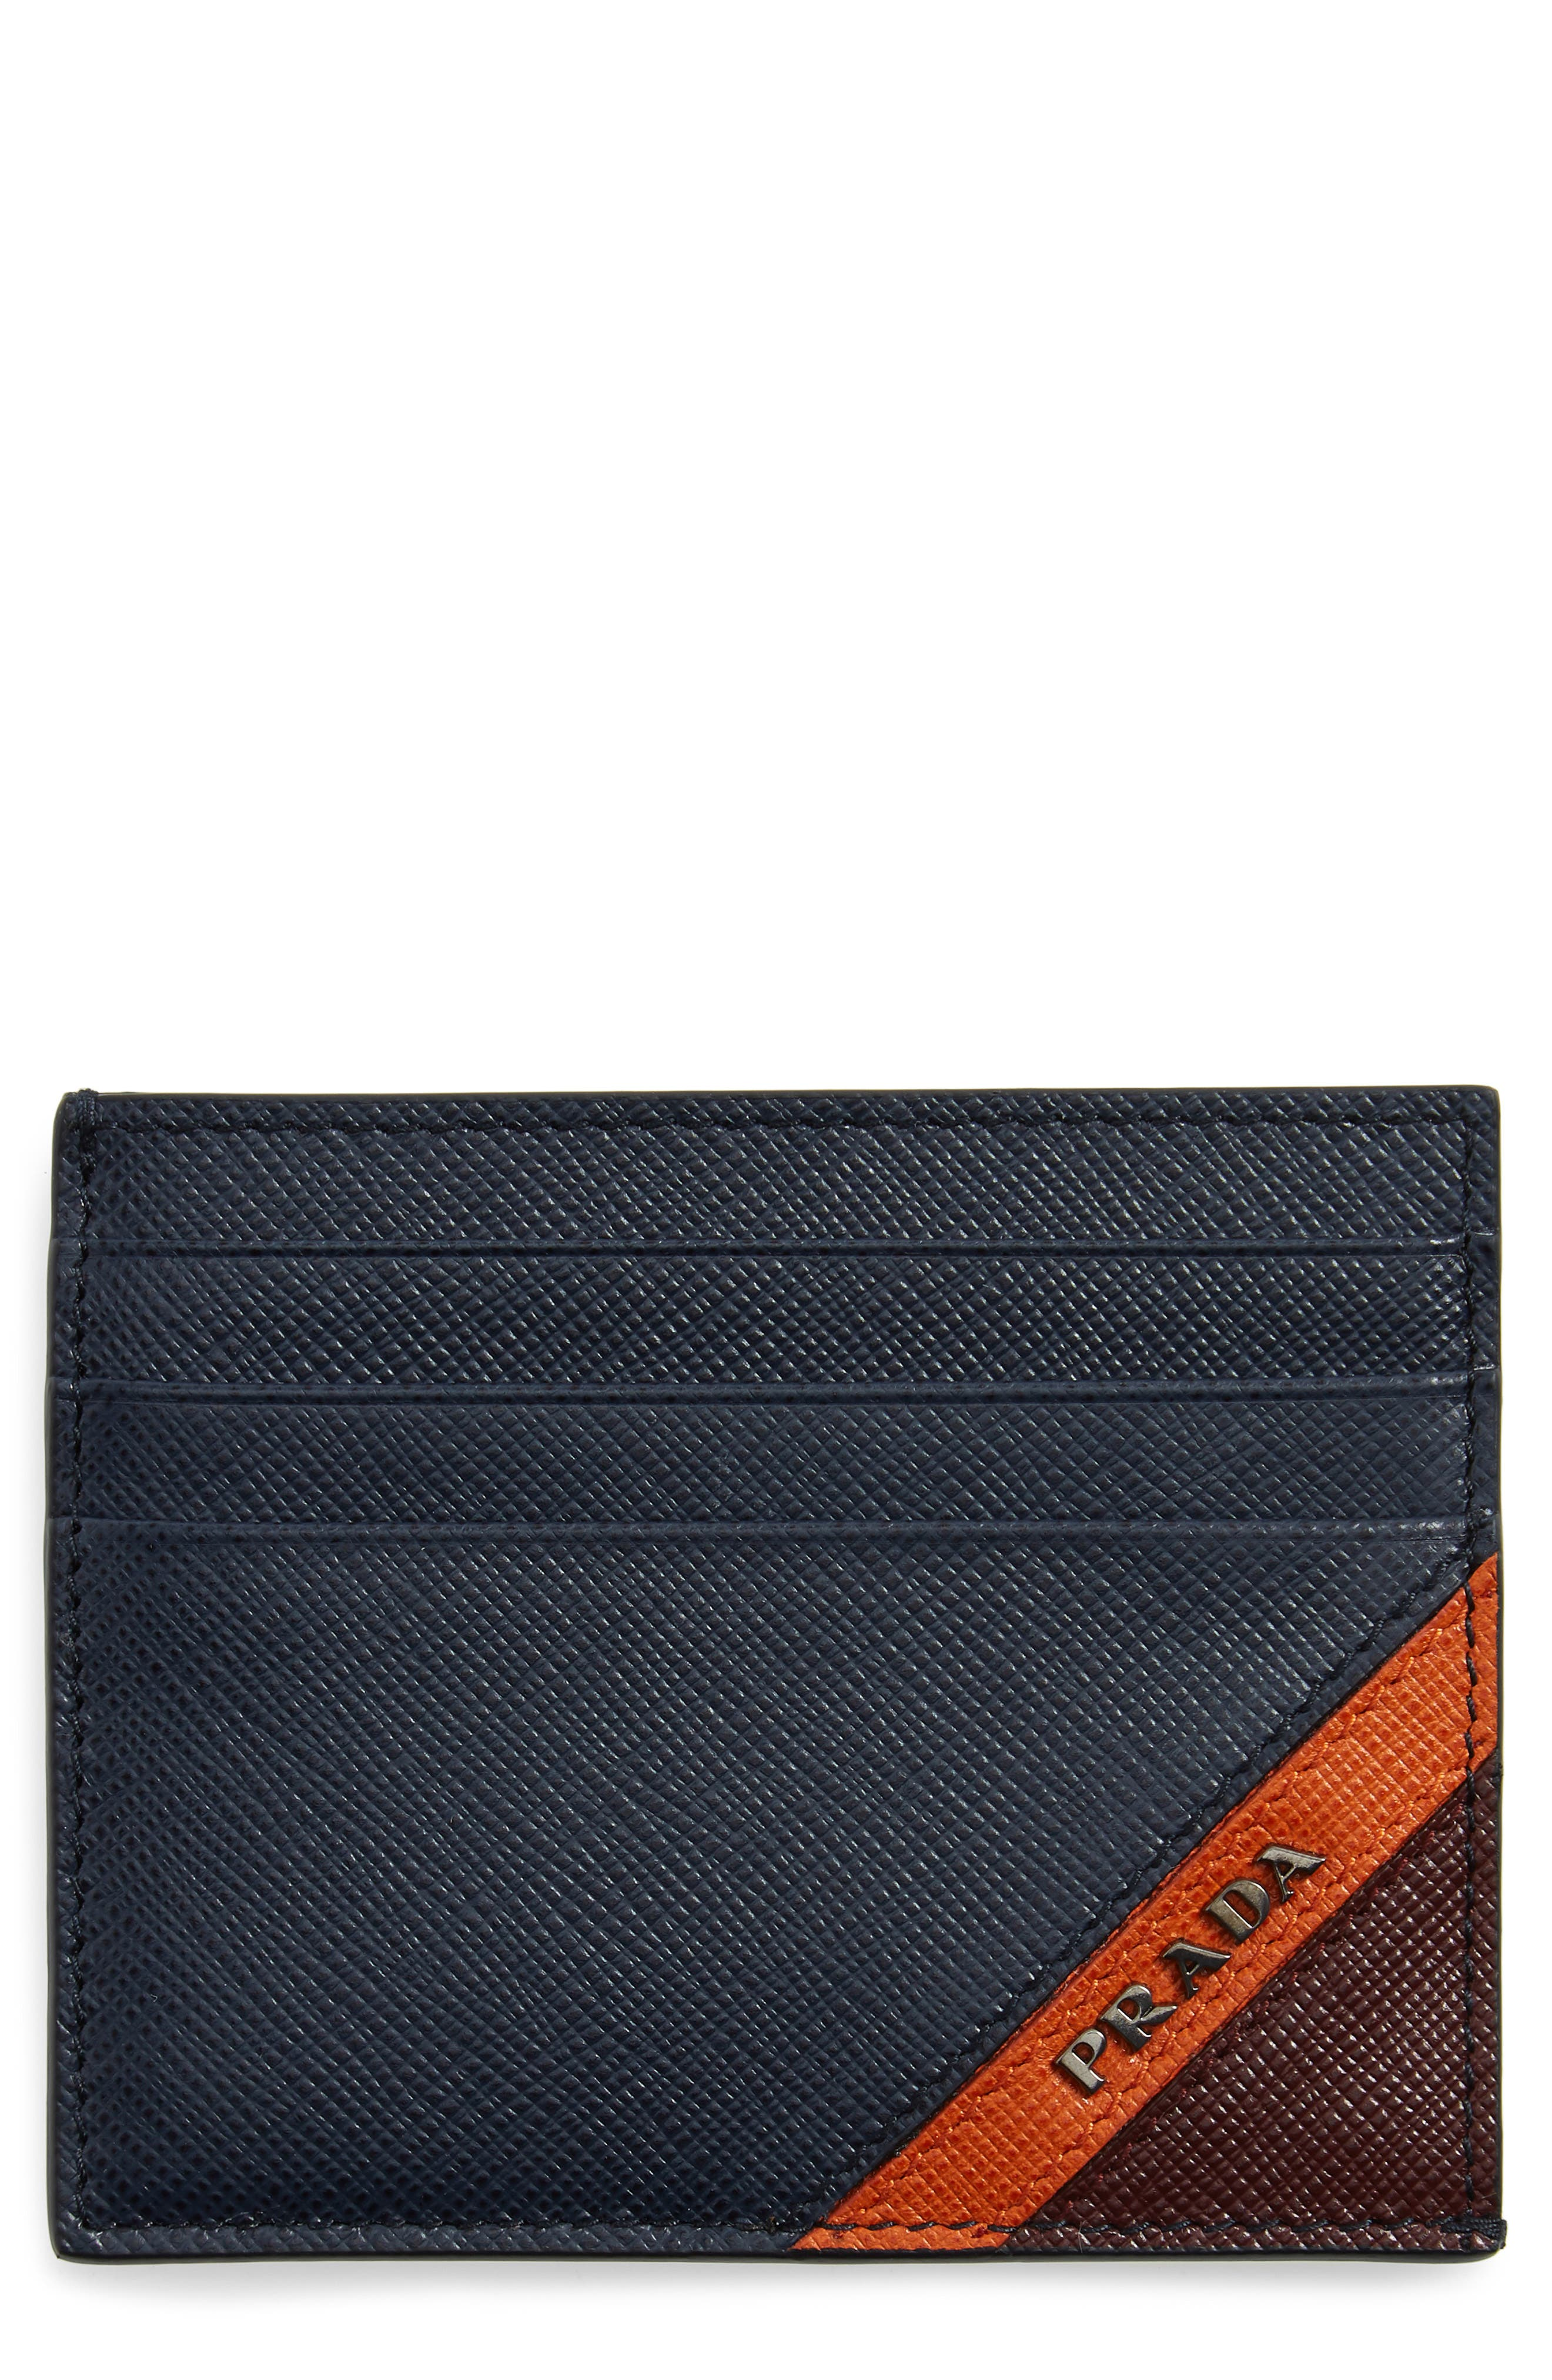 Prada Stripe Saffiano Leather Card Case